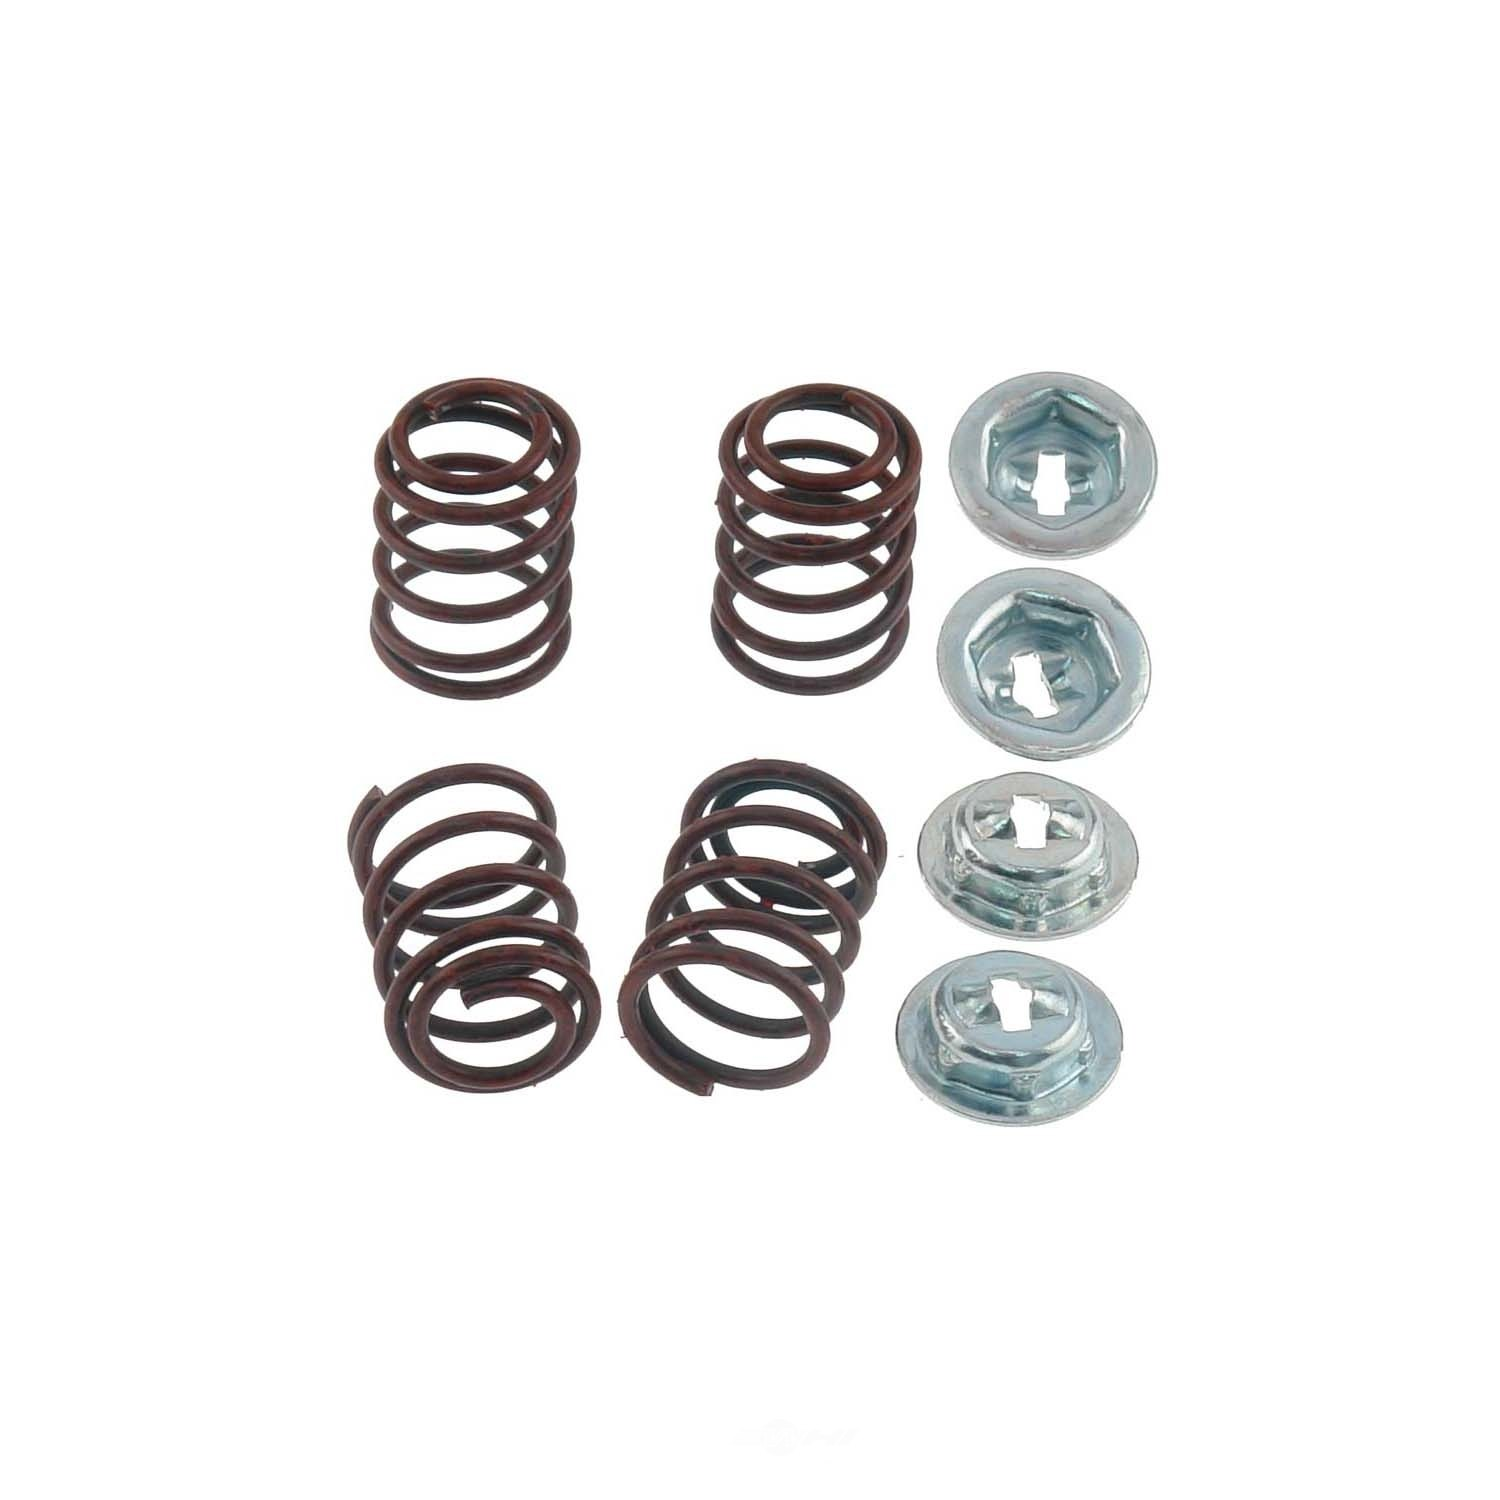 CARLSON QUALITY BRAKE PARTS - Drum Brake Hold Down Spring (Rear) - CRL H1163-2